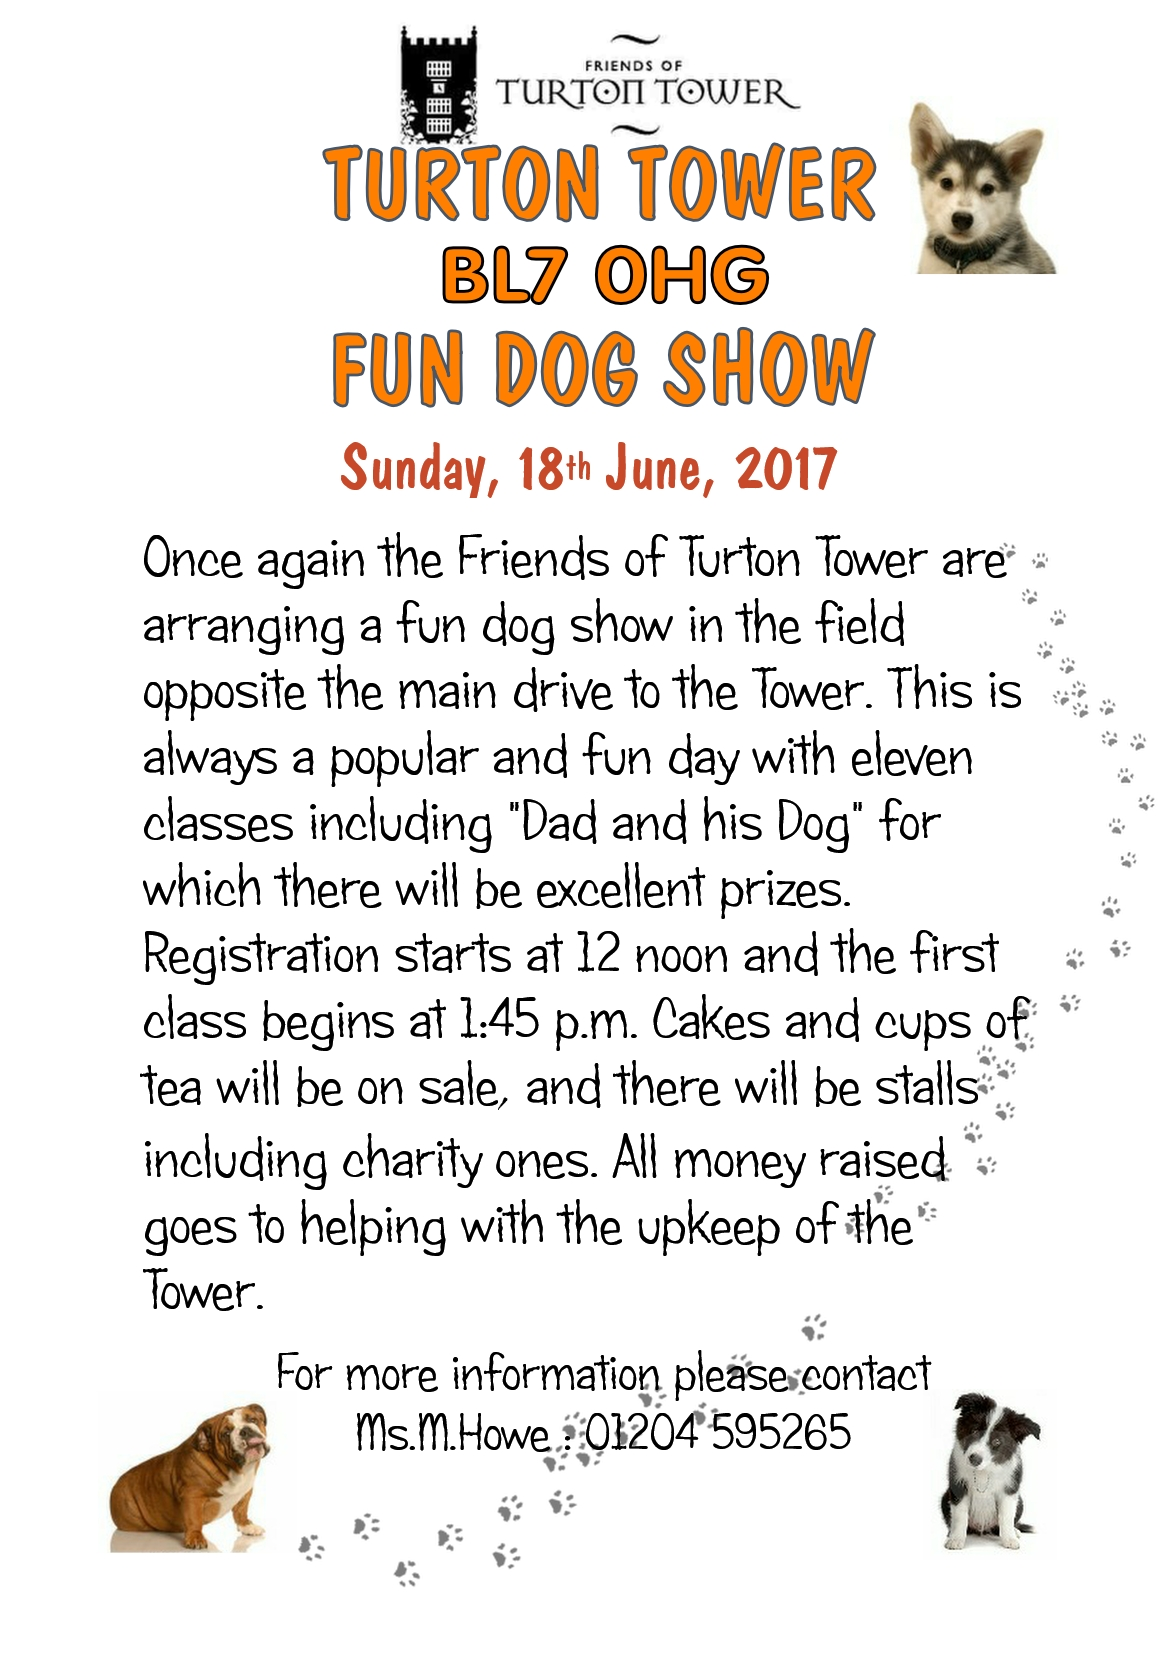 Friends of Turton Tower Famous Fun Dog Show